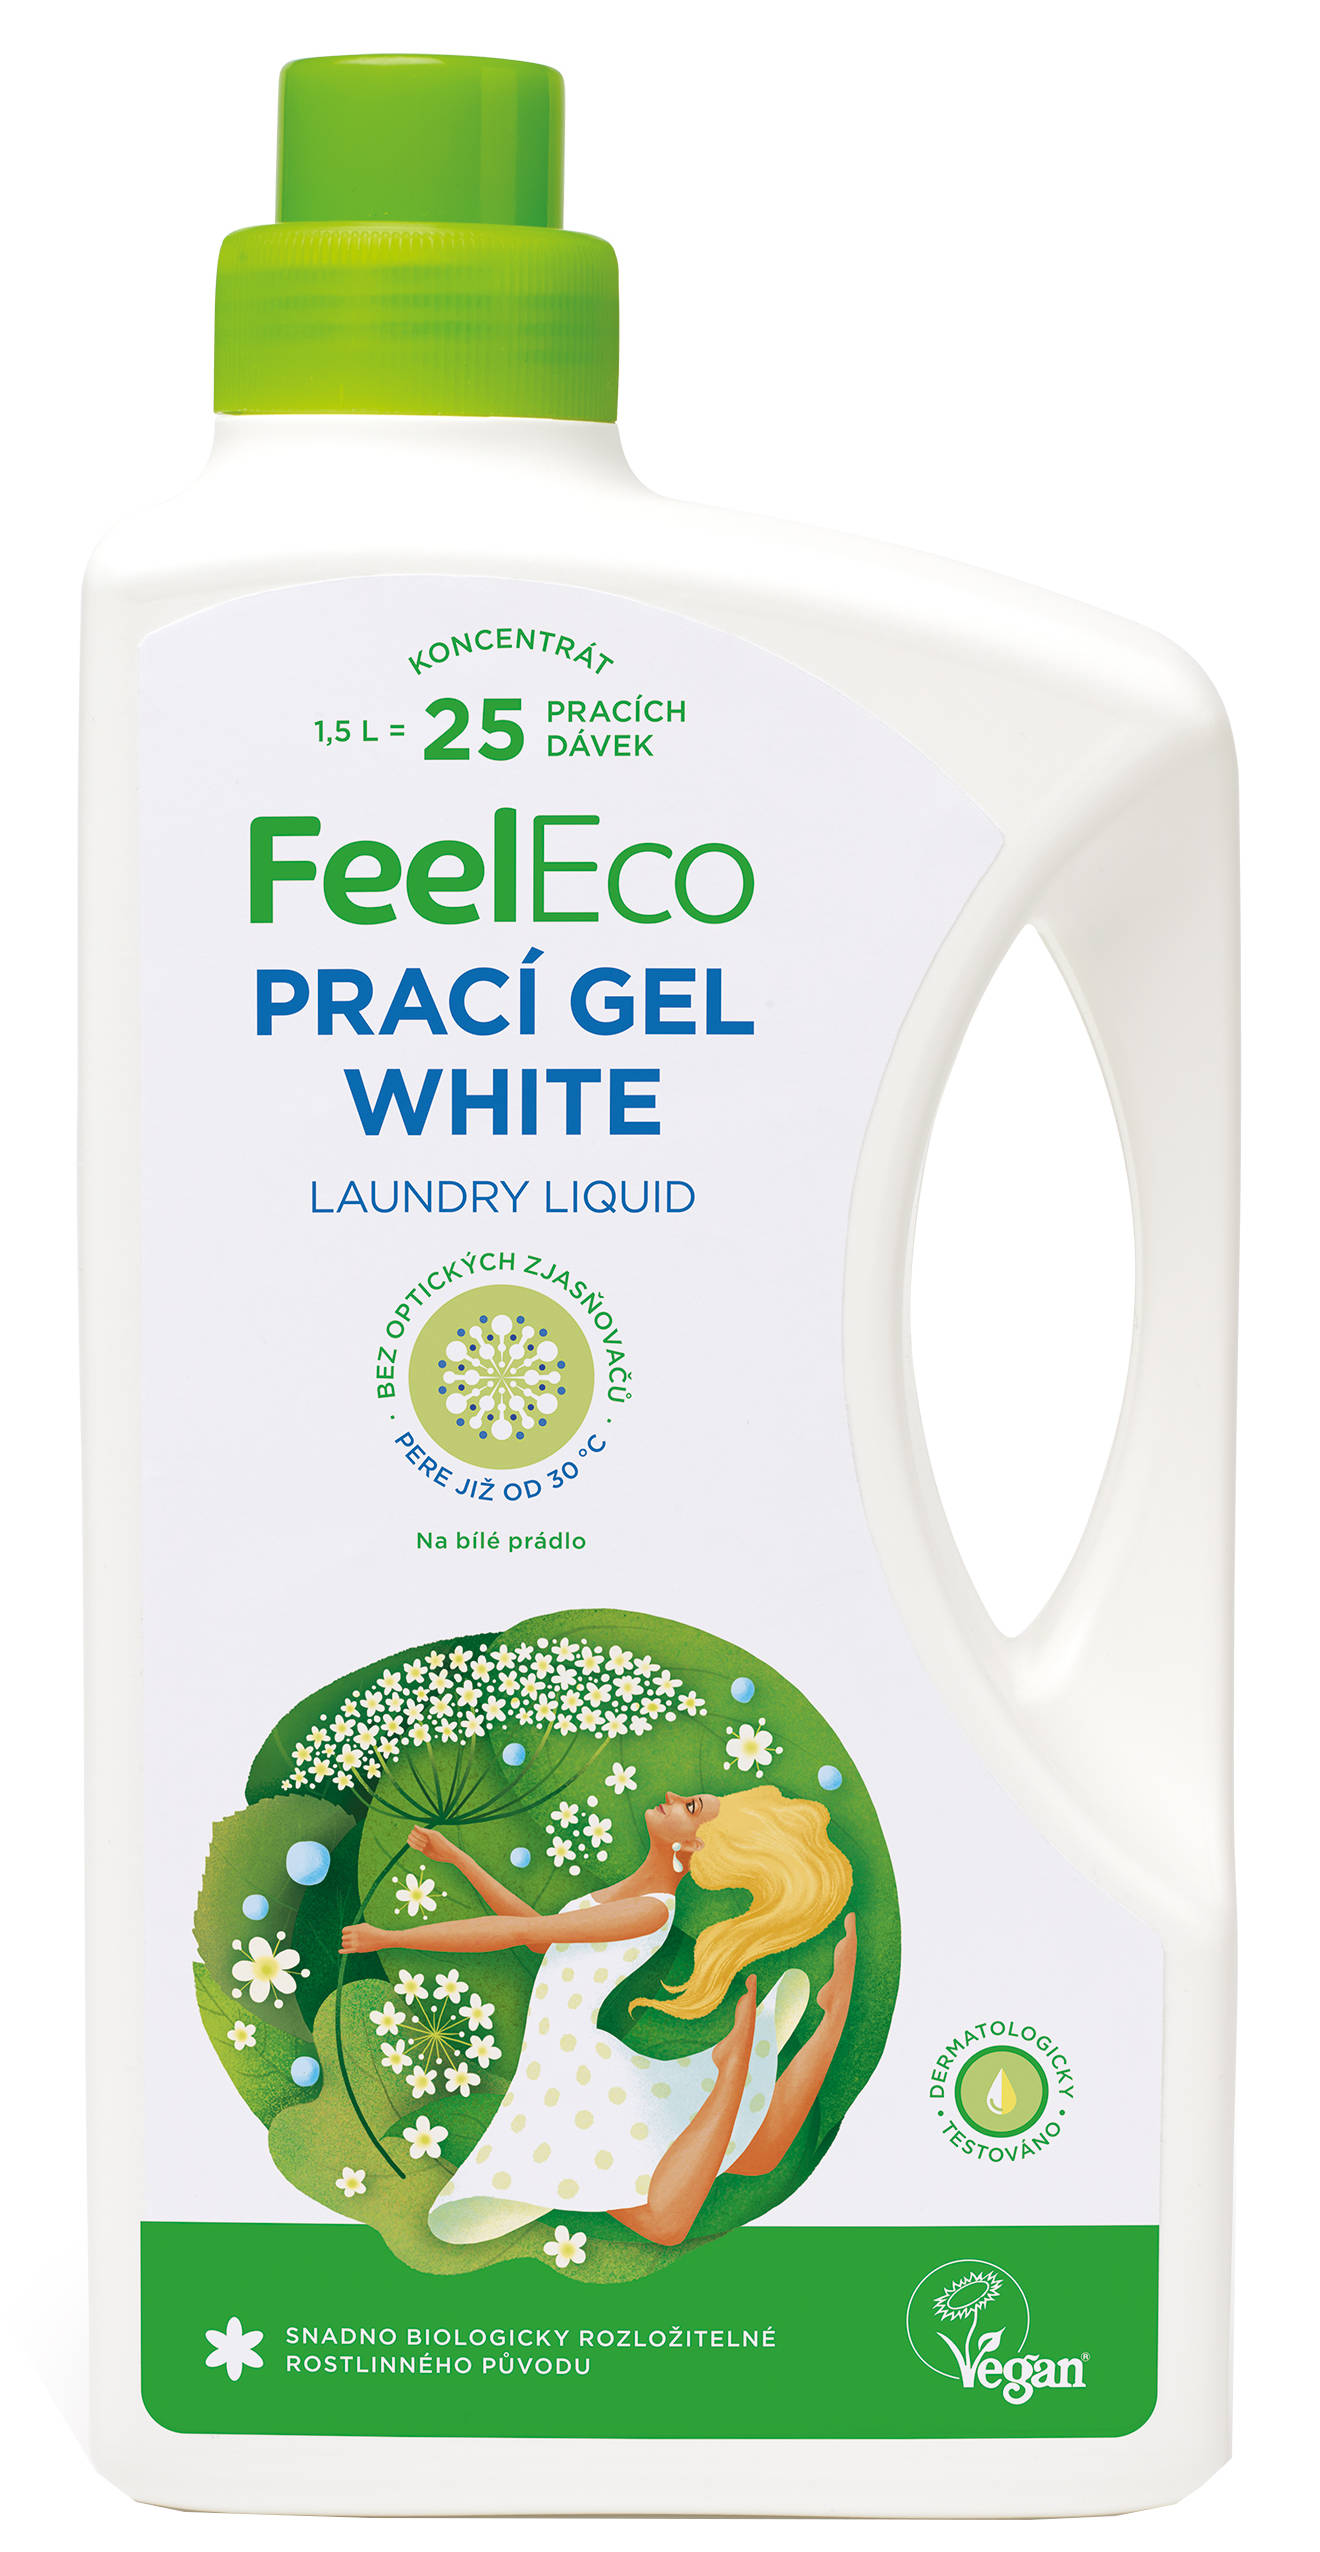 Feel Eco prací gél white 1,5l